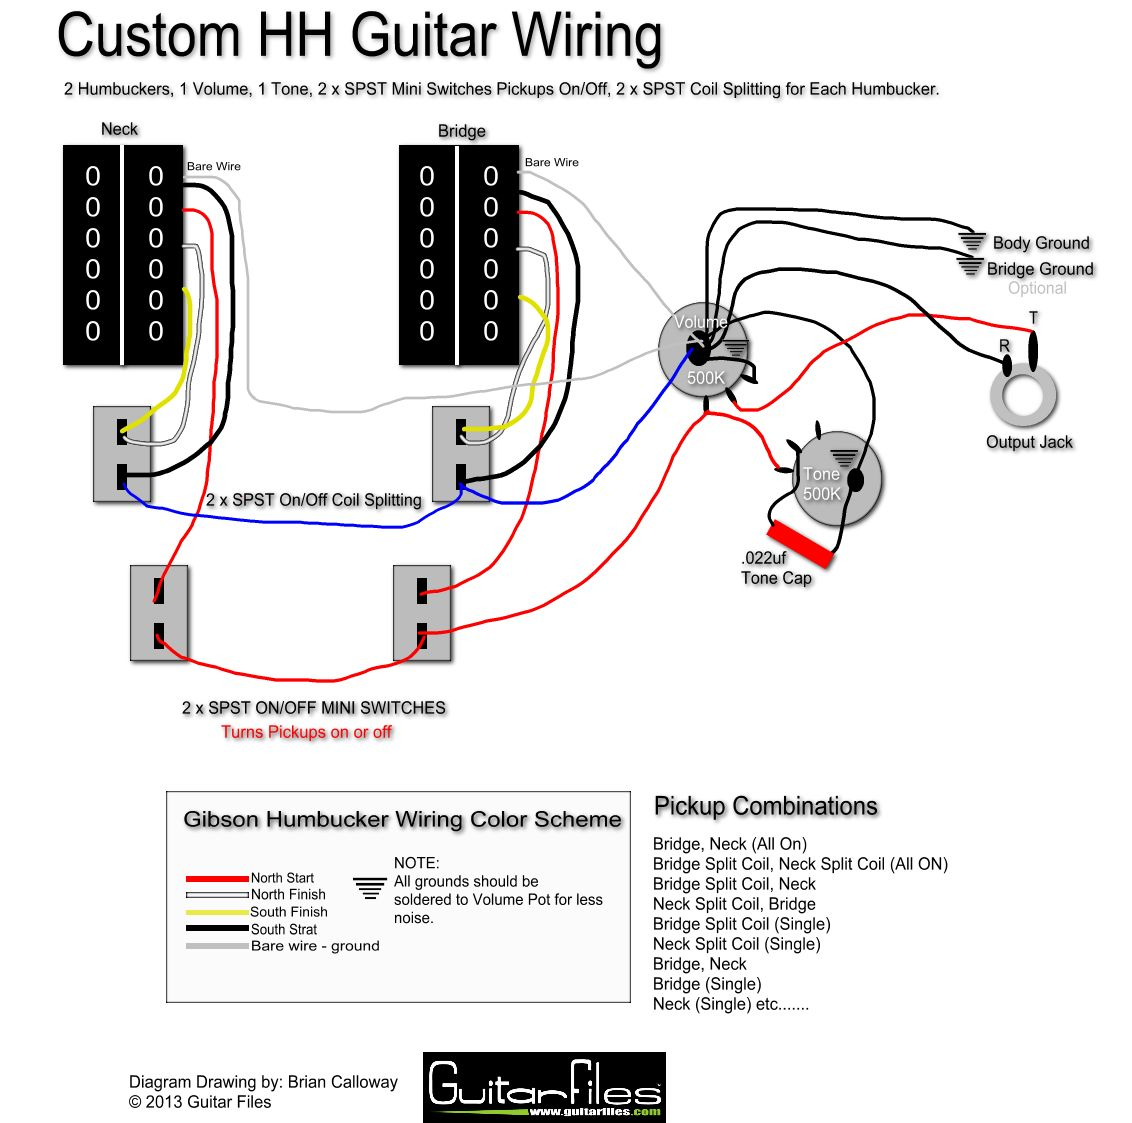 Hh Wiring Diagram Browse Data Telecaster Custom Besides Fender With Spst Coil Splitting And Switching Diagrams